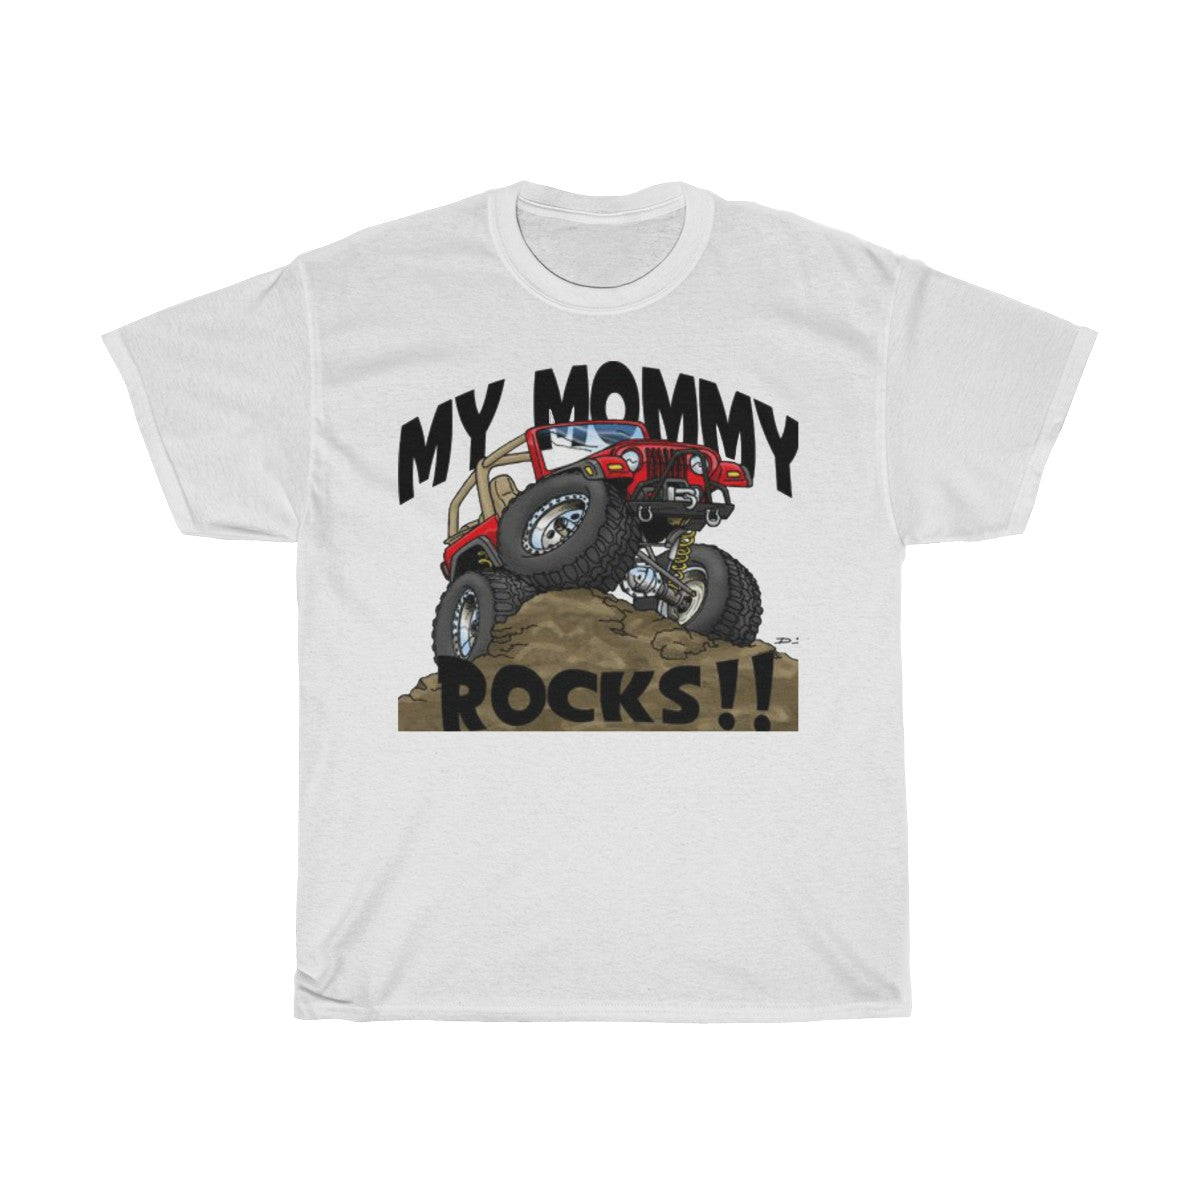 Jeep shirts accessories tee My mommy rocks Unisex